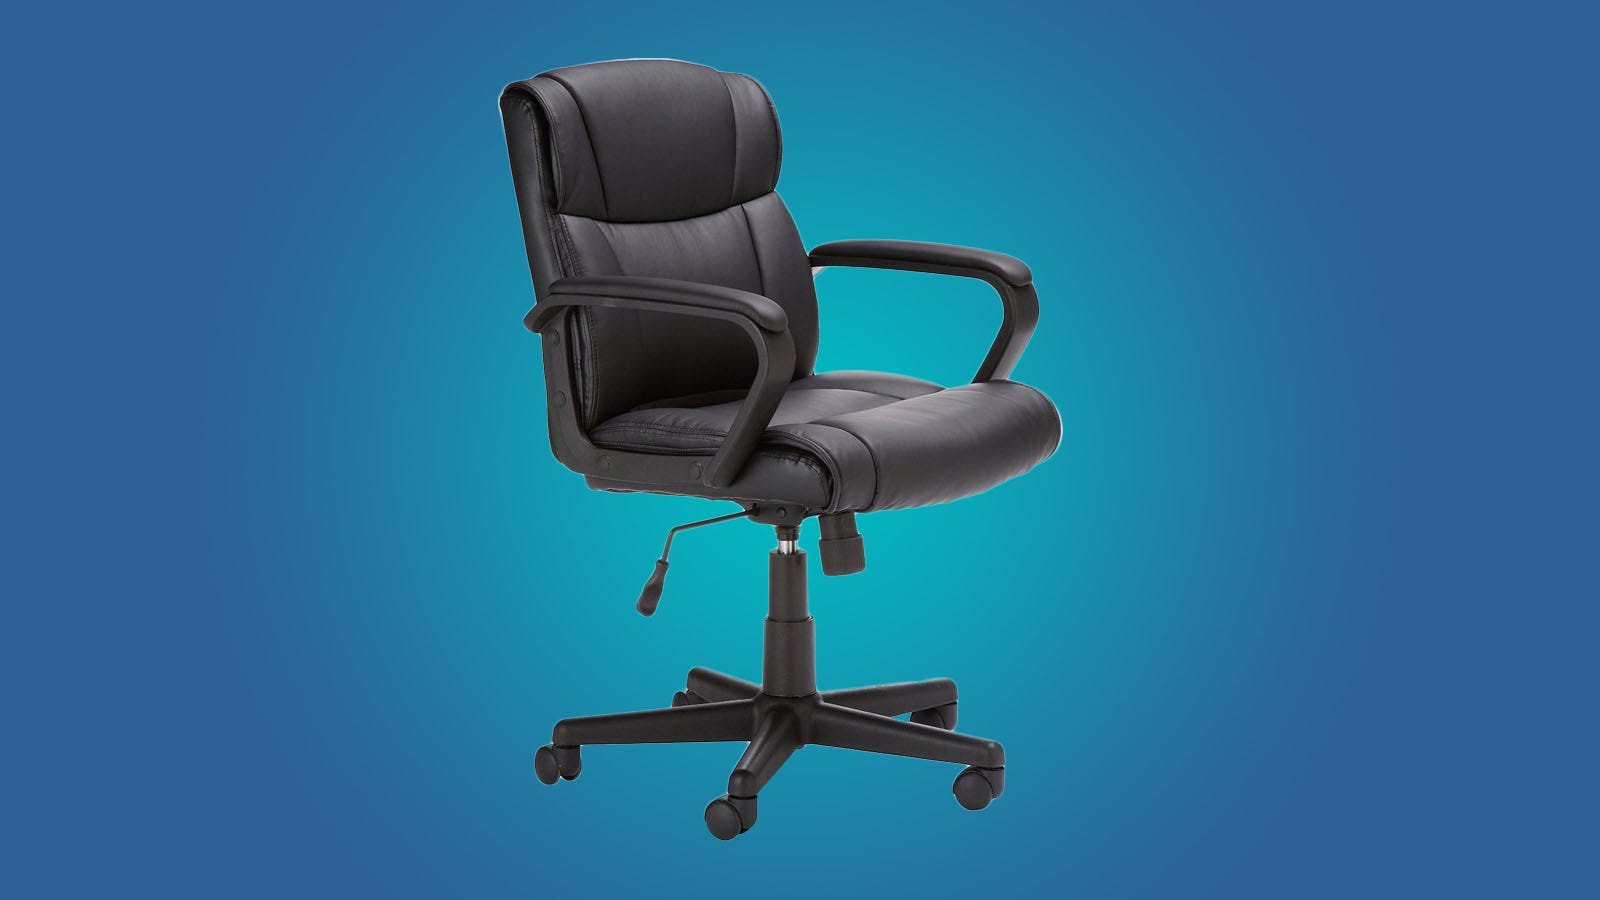 ... Setup Is Vital To Your Productivity Levels. After All, If Youu0027re Not  Comfy, How Can You Work Efficiently? Hereu0027s Our Top Picks For Office Chairs  Priced ...